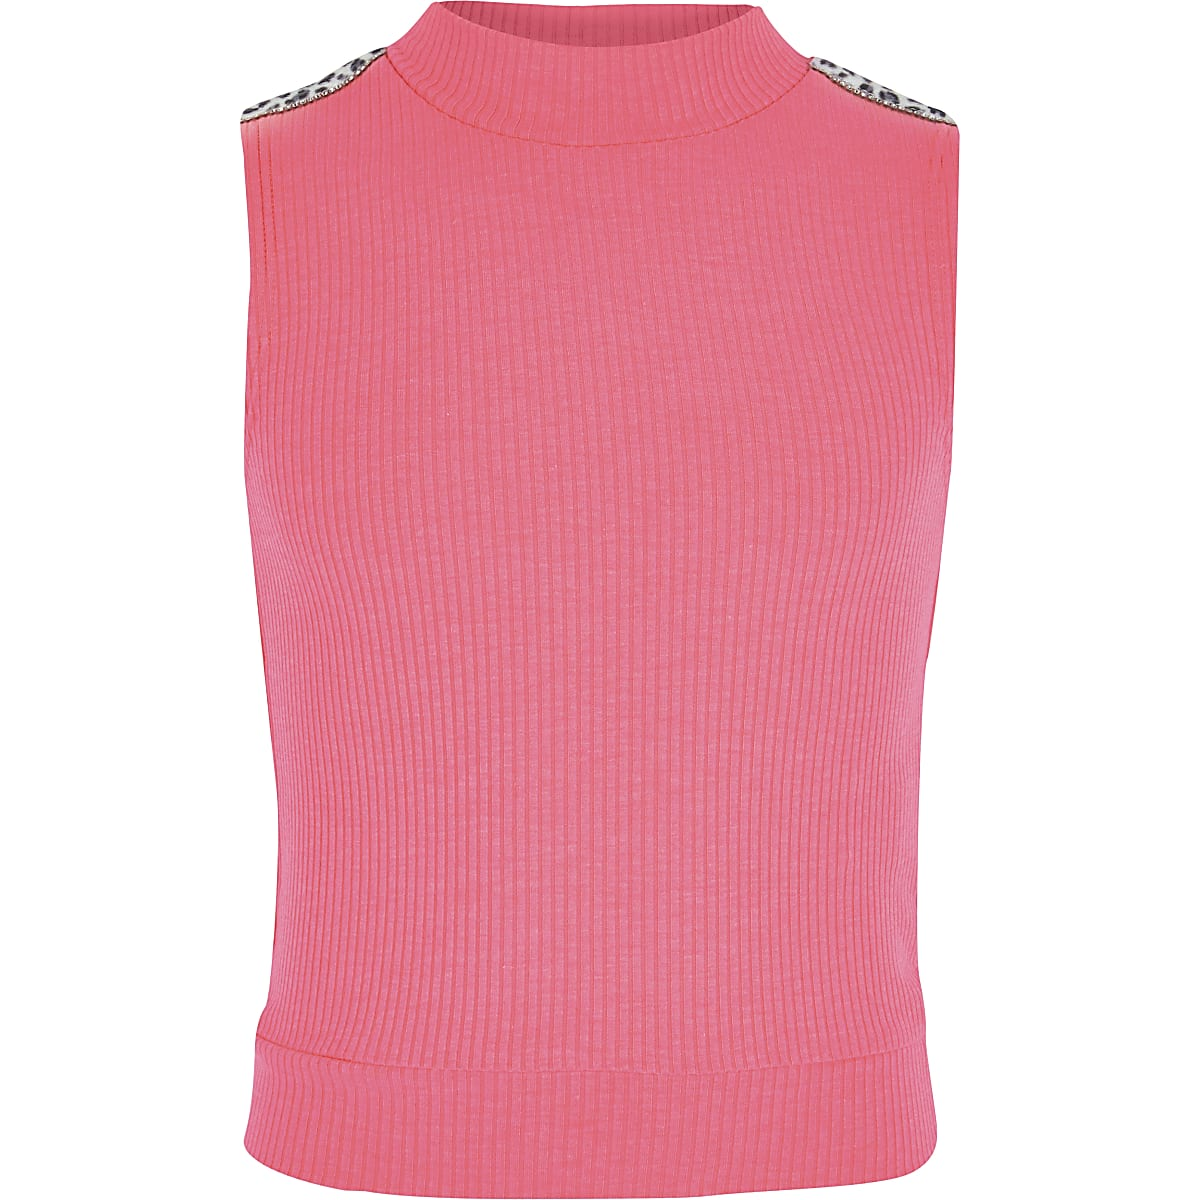 Girls neon pink diamante trim high neck top